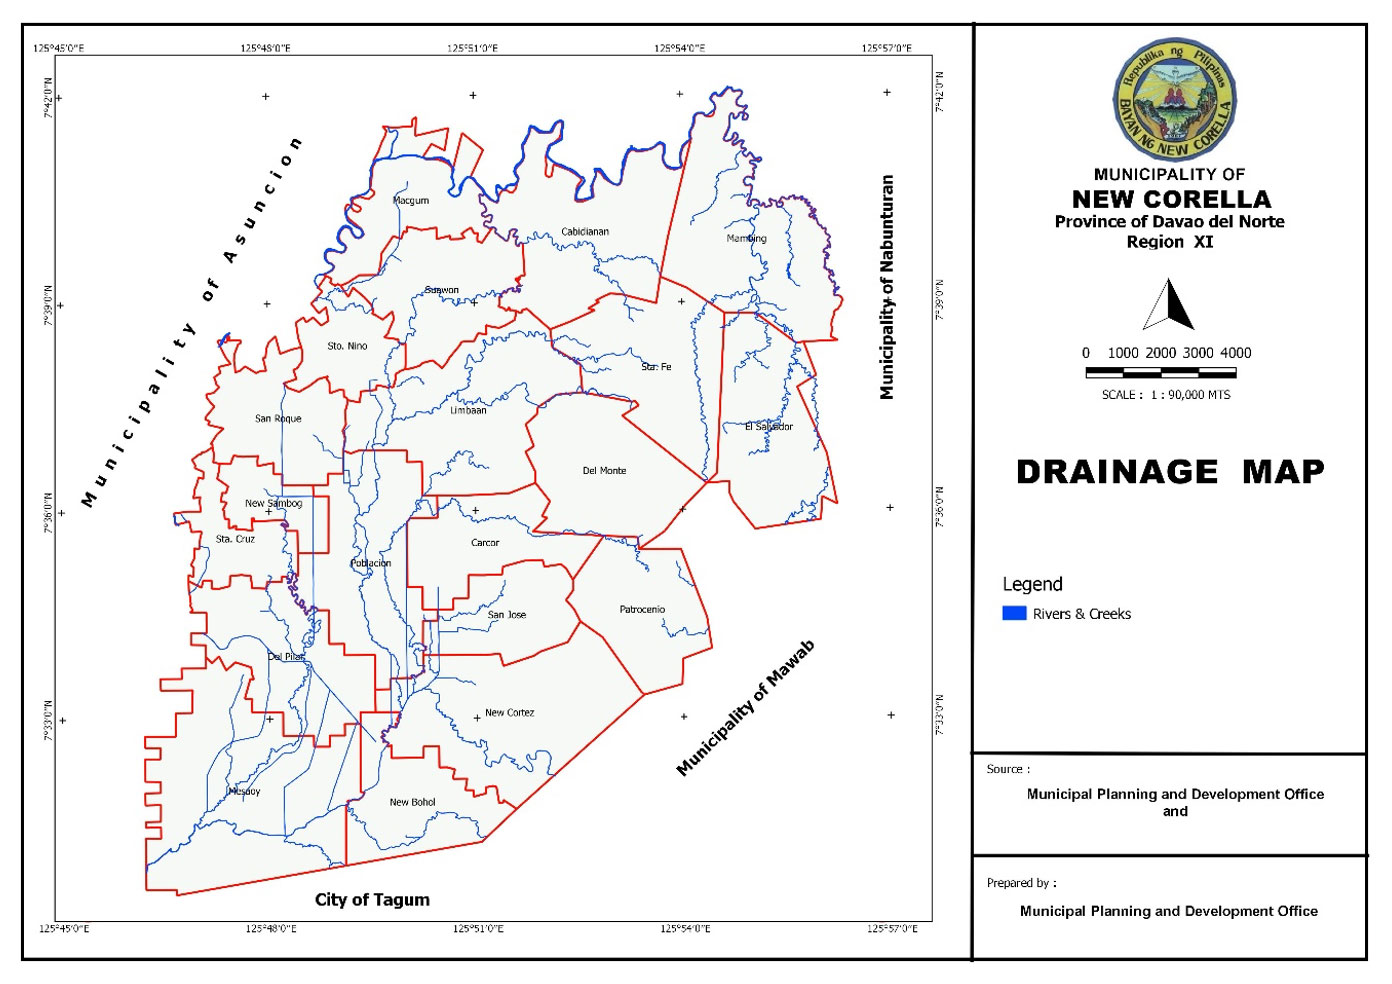 New Corella Drainage Map